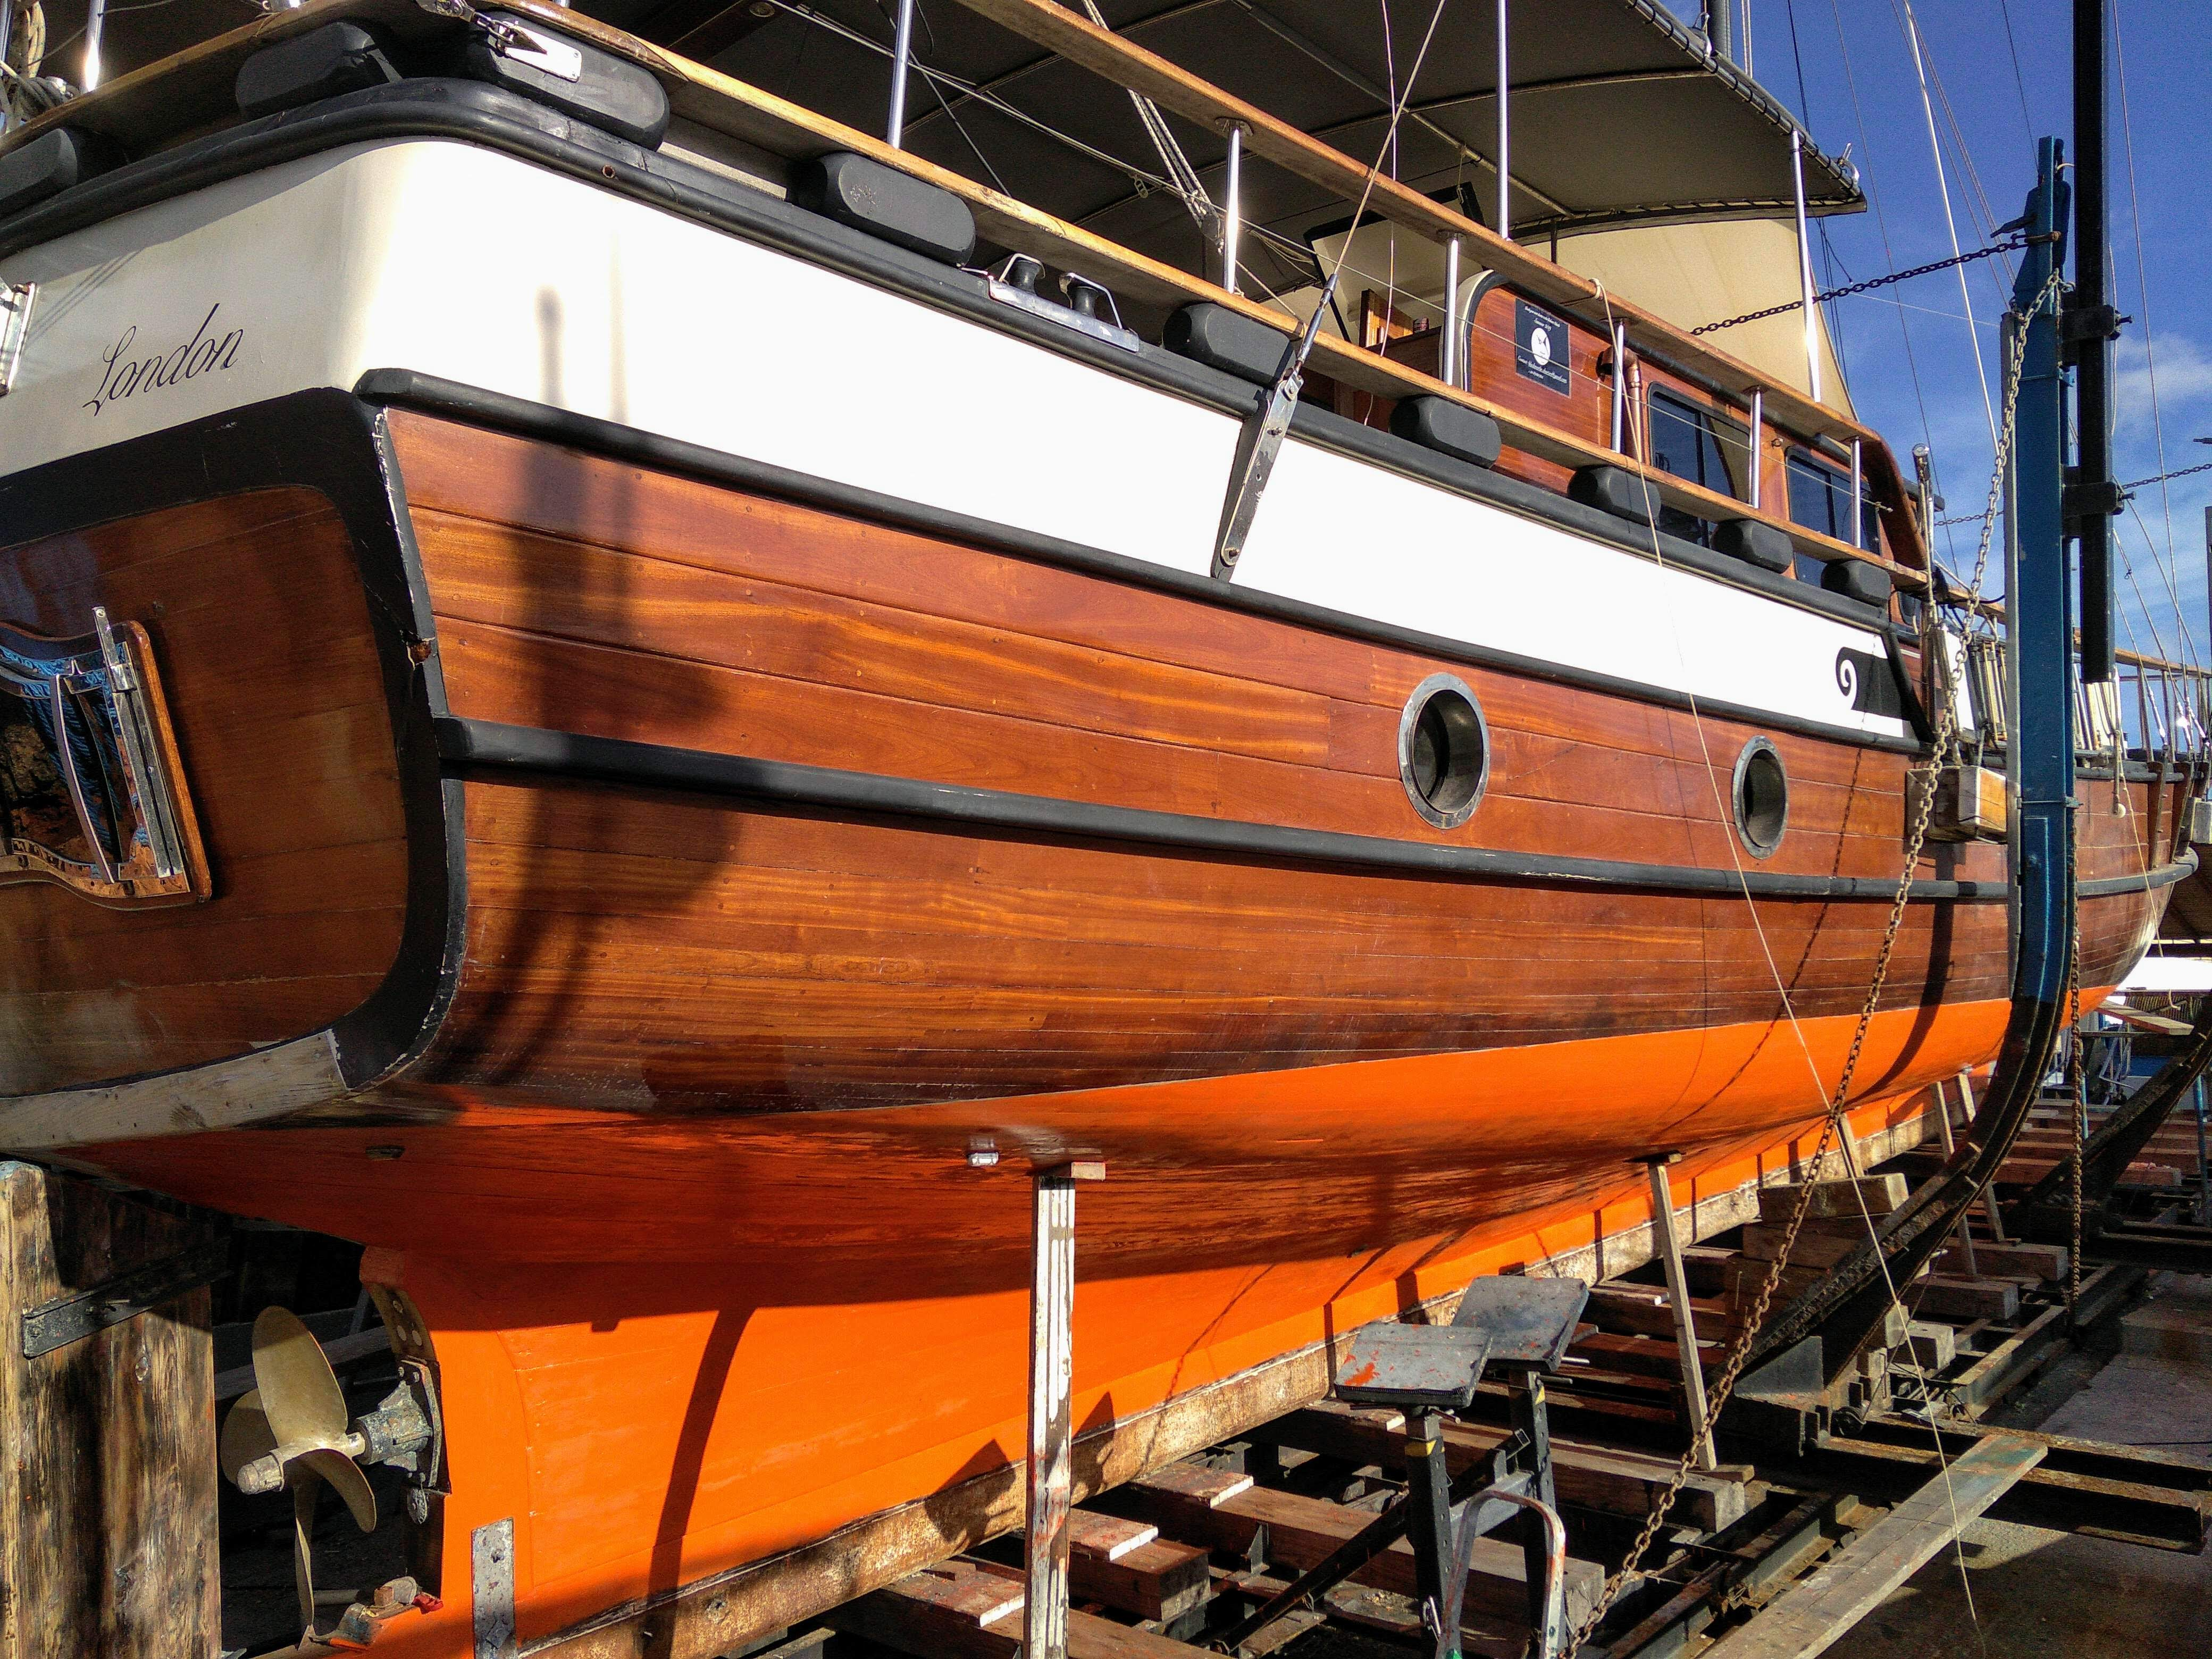 Applying fish oil to seal the hull